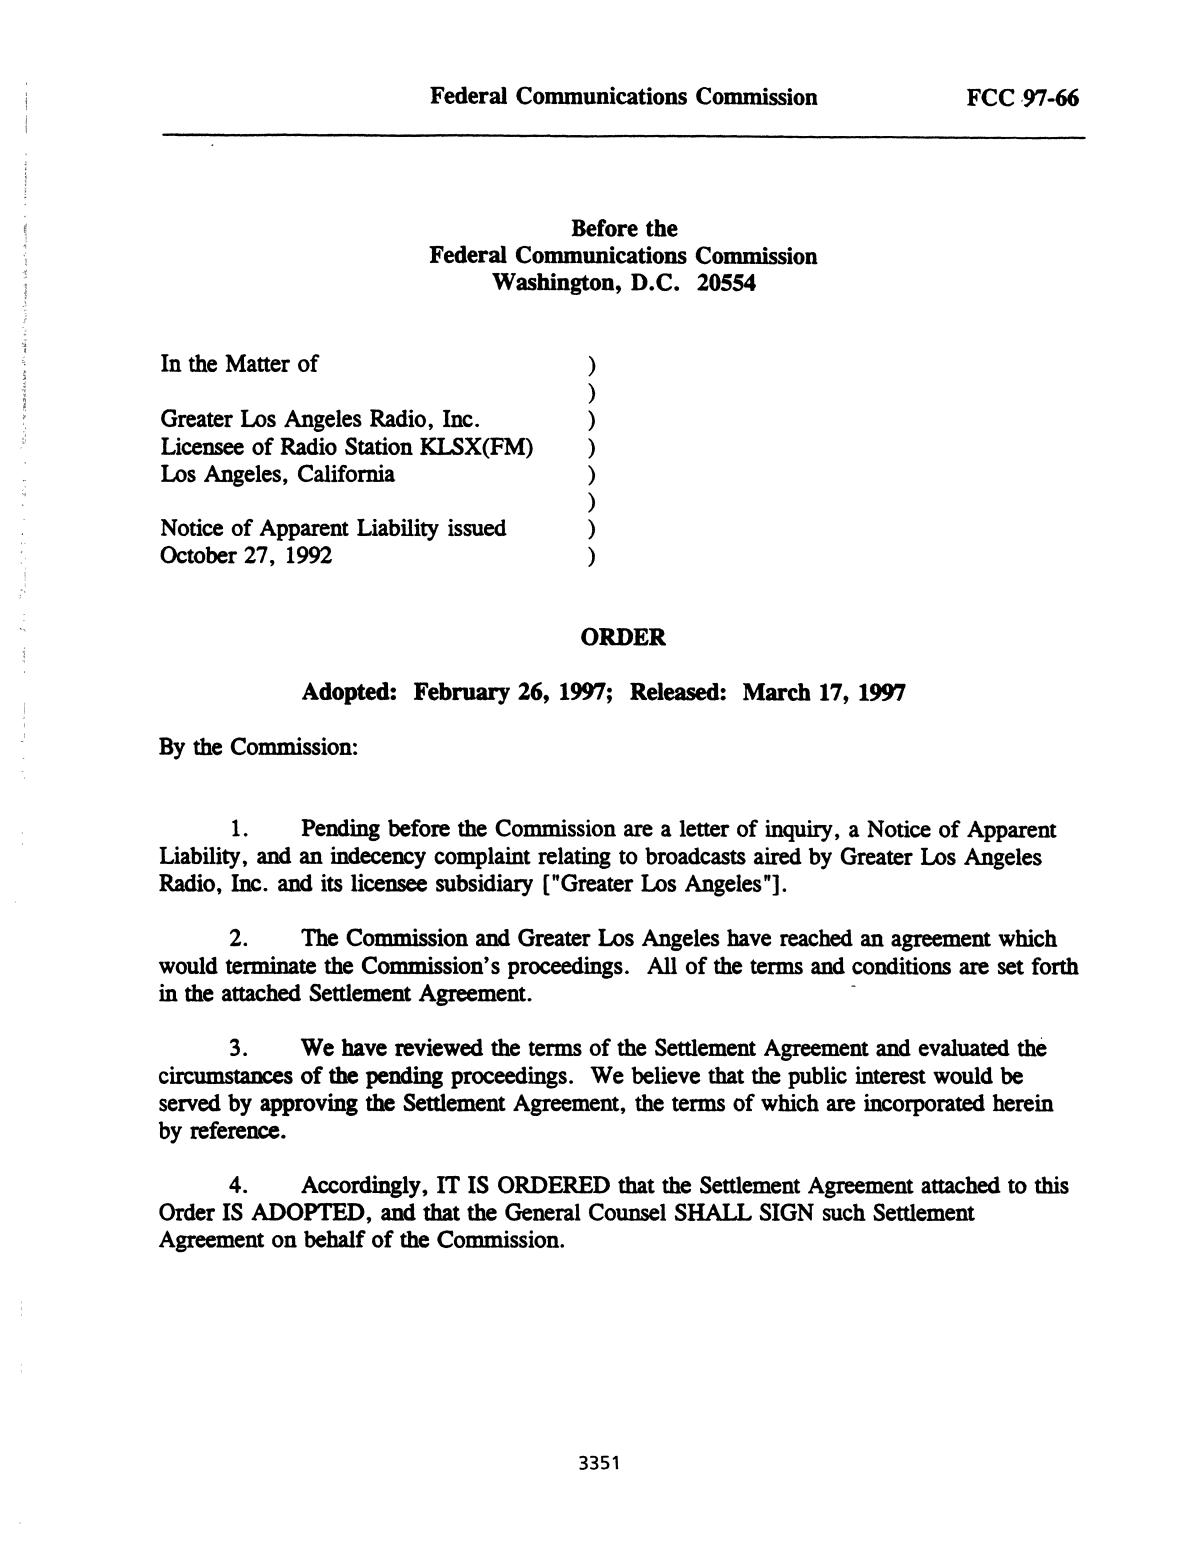 FCC Record, Volume 12, No. 6, Pages 2926 to 3507, March 10 - March 21, 1997                                                                                                      3351